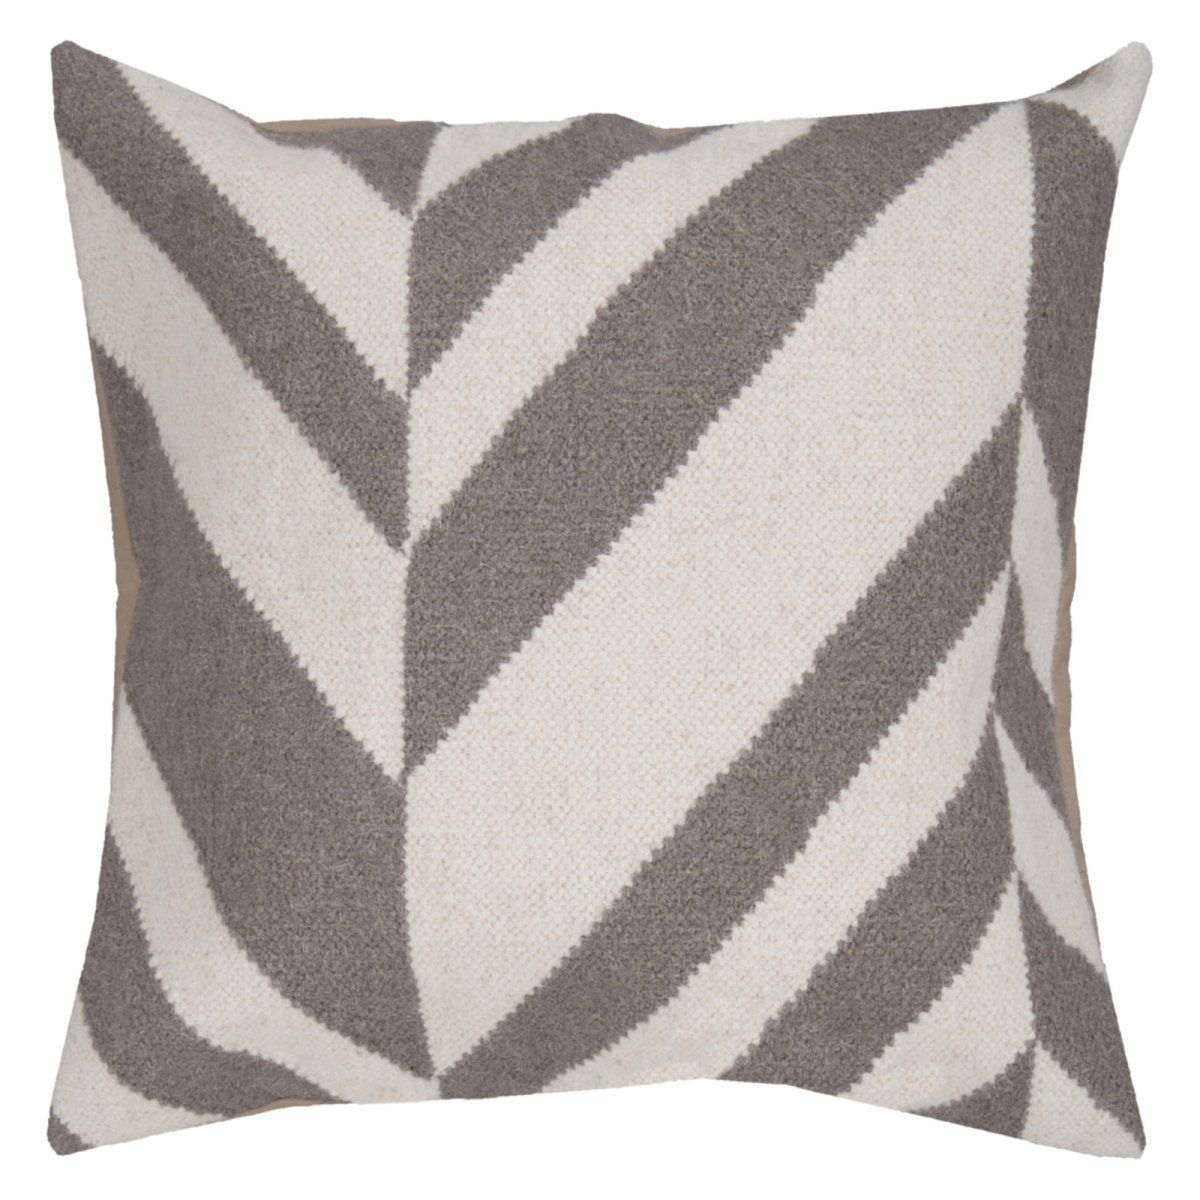 Surya Diagonal Decorative Pillow